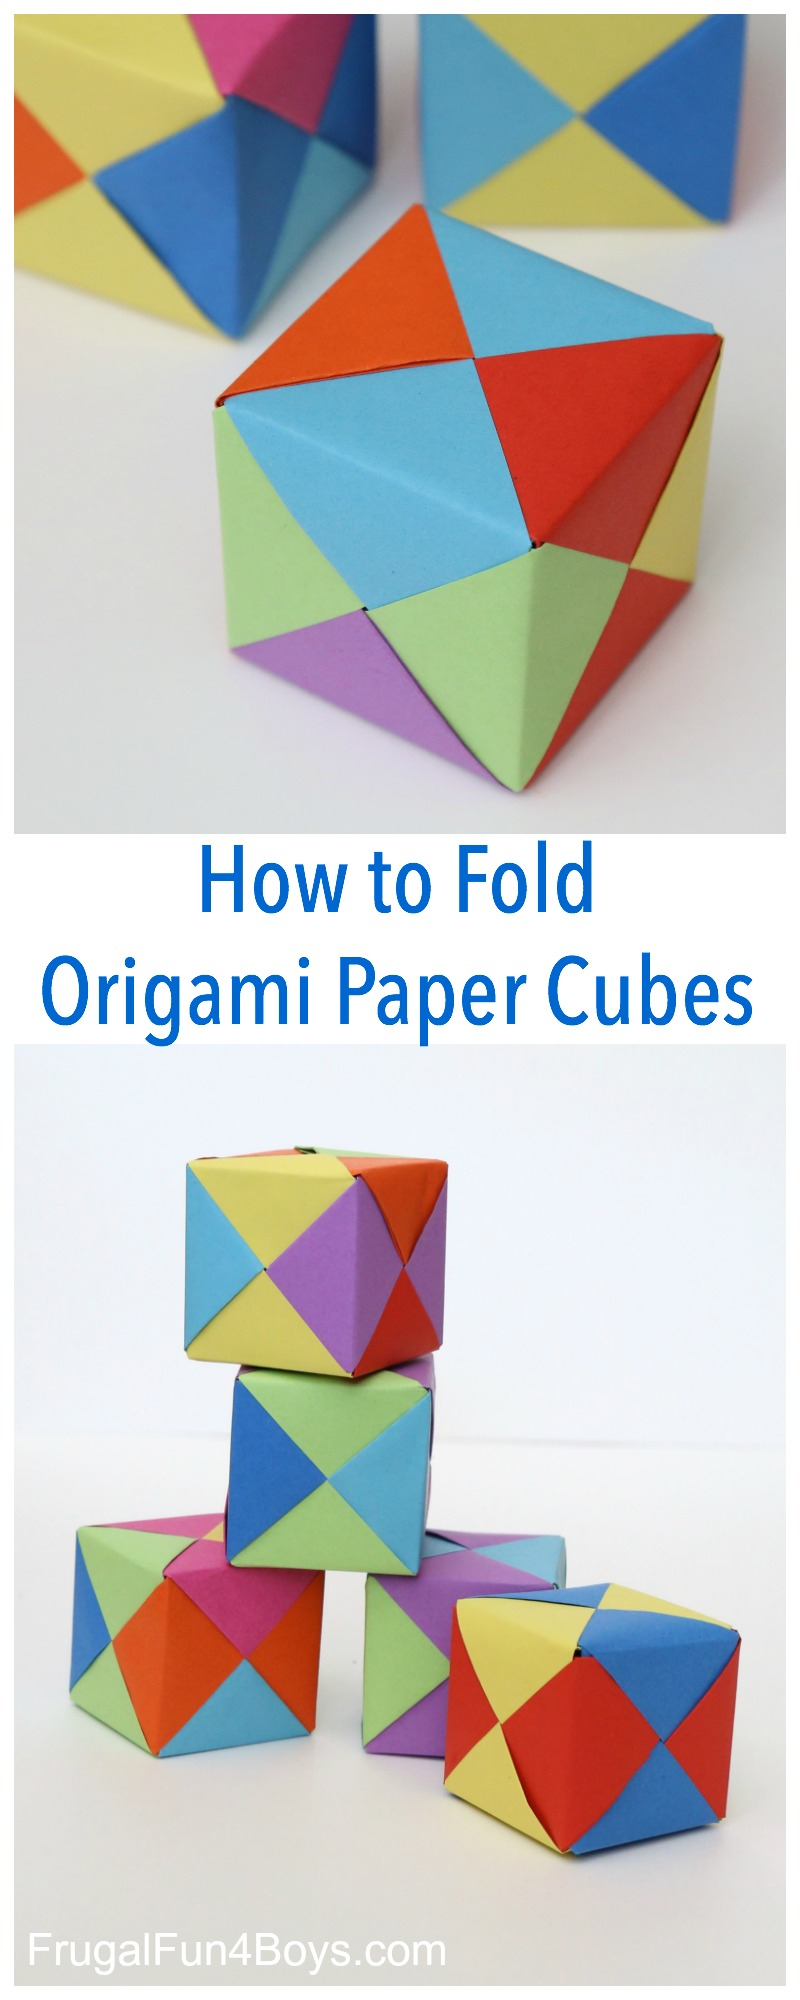 Origami Things For Kids How To Fold Origami Paper Cubes Frugal Fun For Boys And Girls